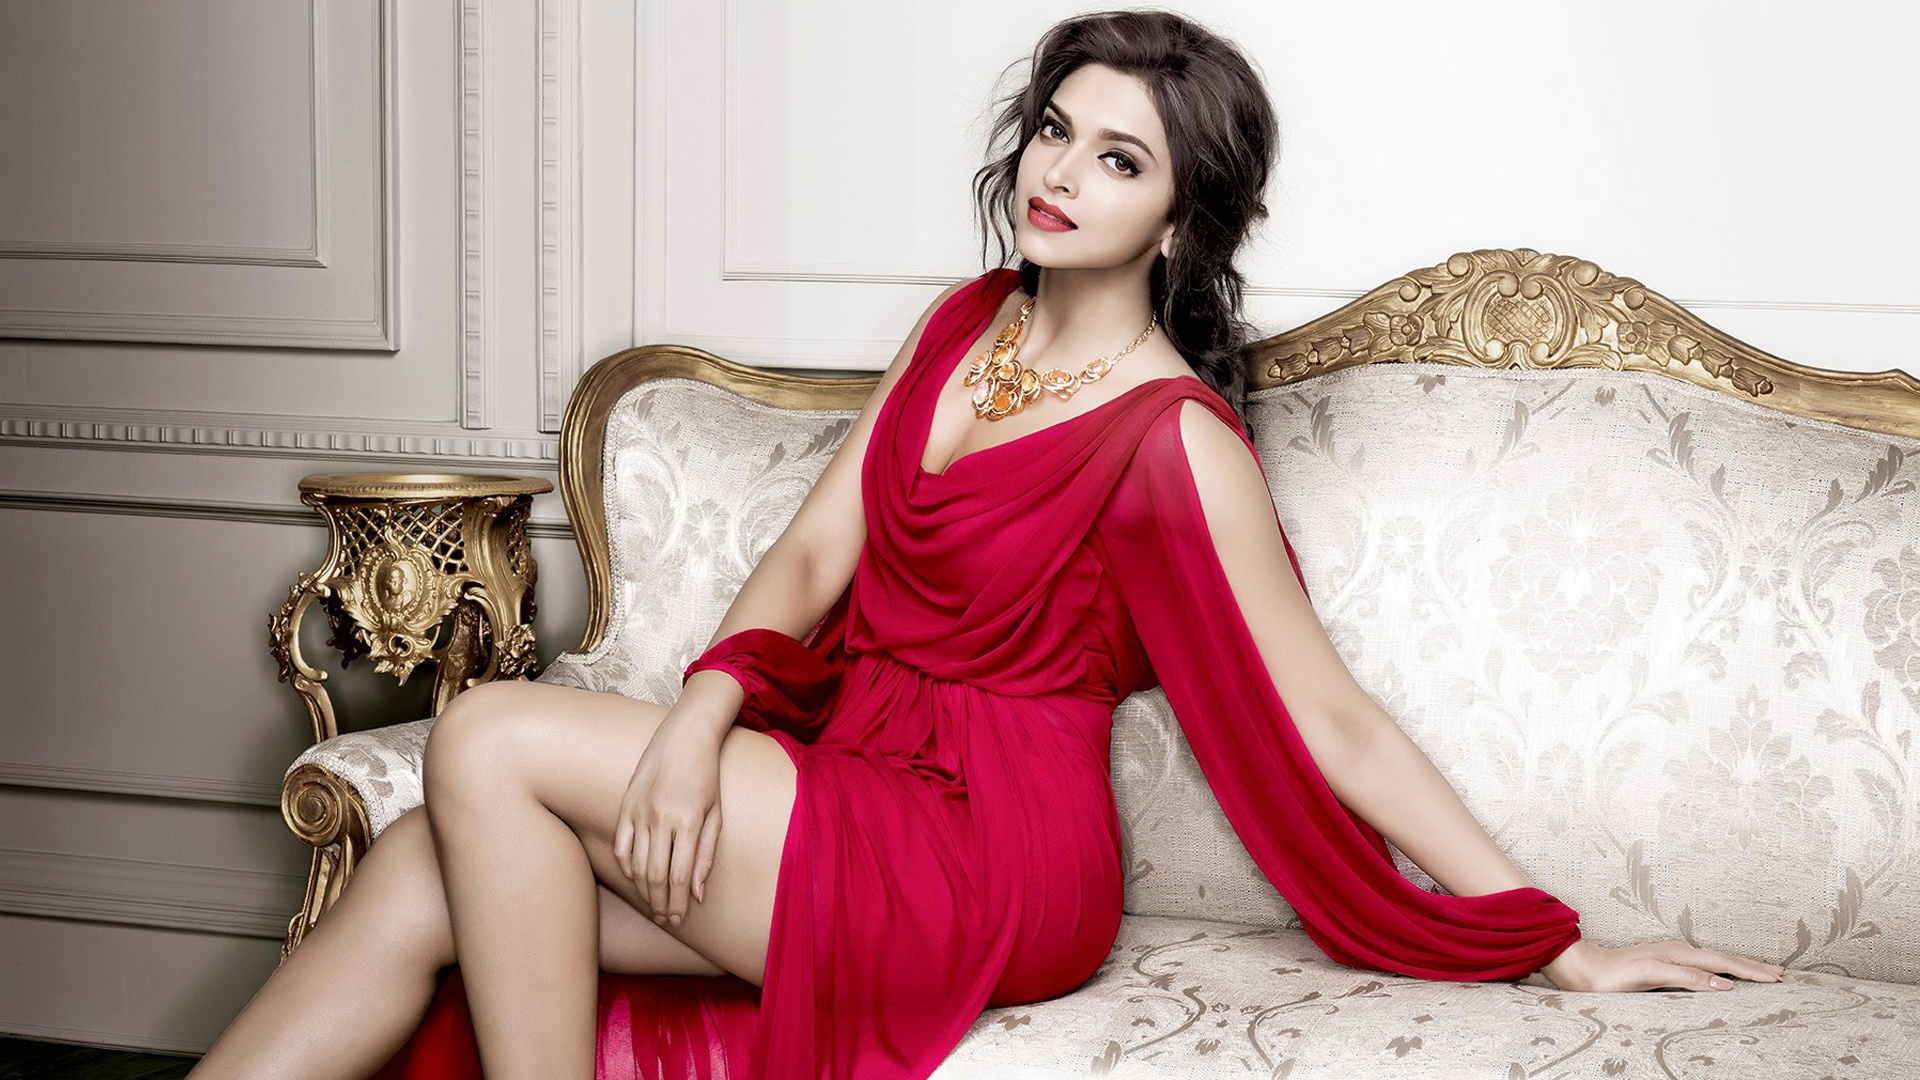 Indian Actresses Images Deepika Padukone Hd Wallpaper And Background